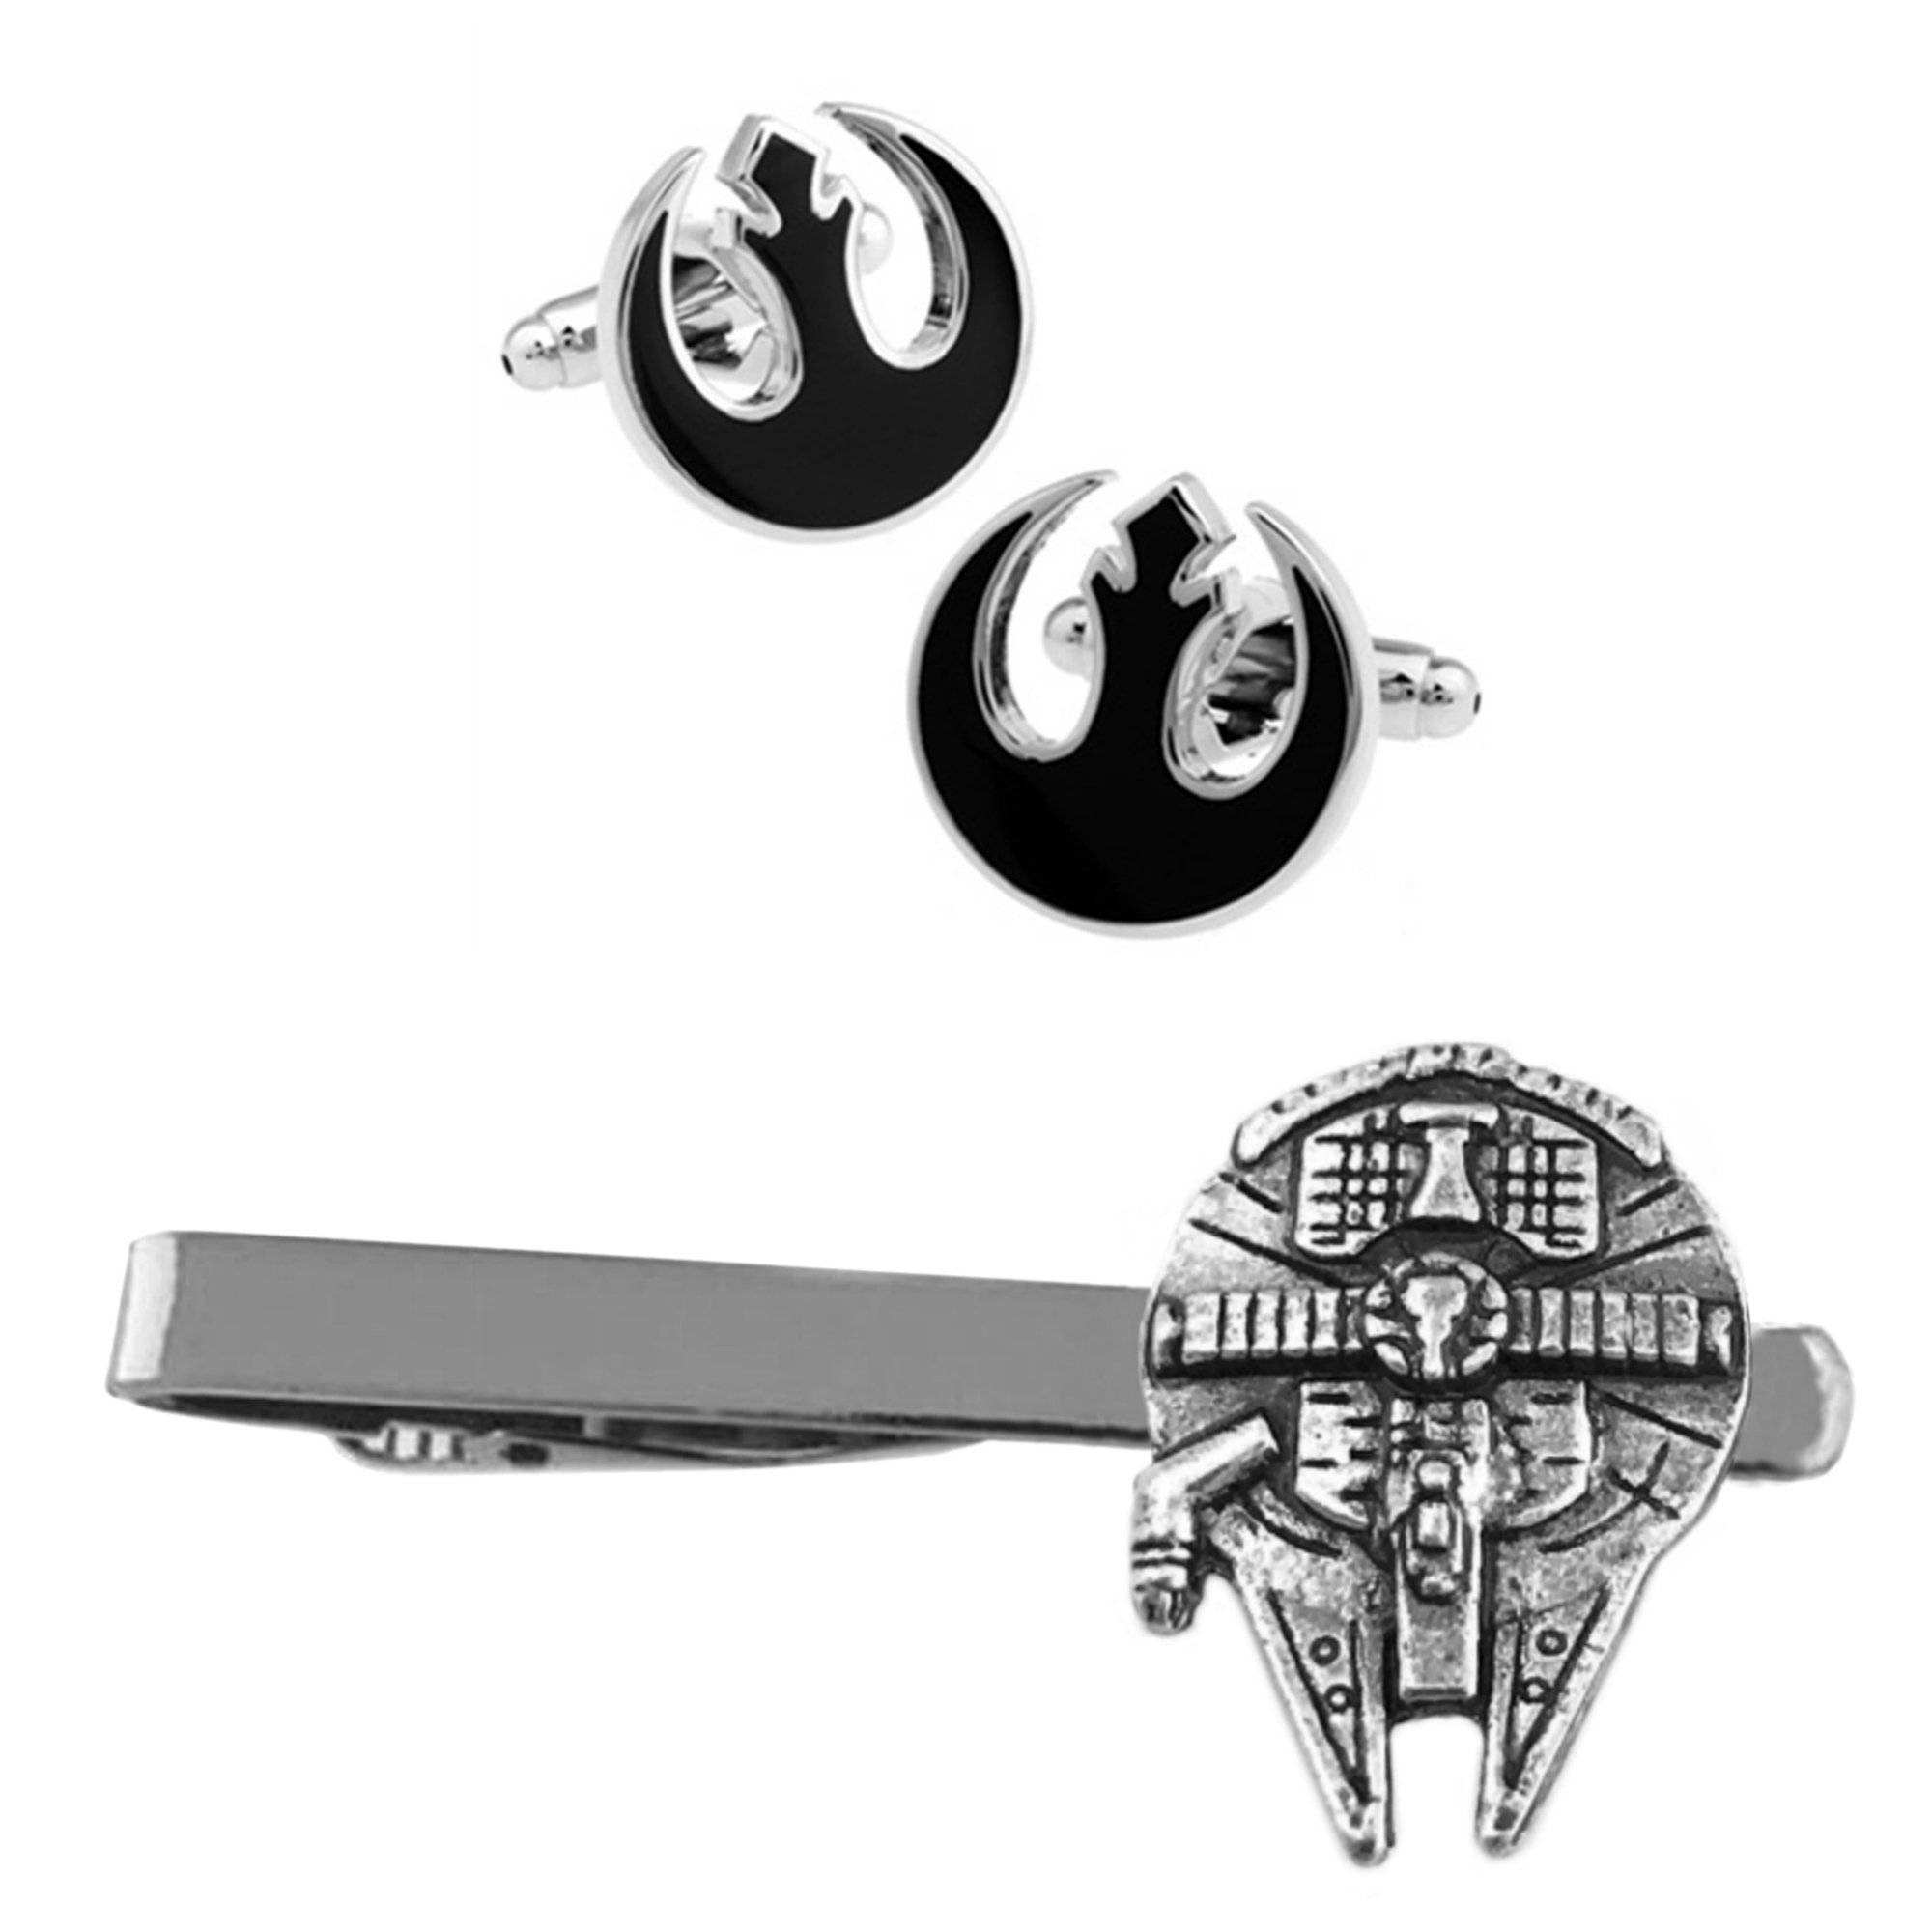 Outlander Rebel Black Cufflink & Millenium Falcon Tiebar - New 2018 Star Wars Movies - Set of 2 Wedding Logo w/Gift Box